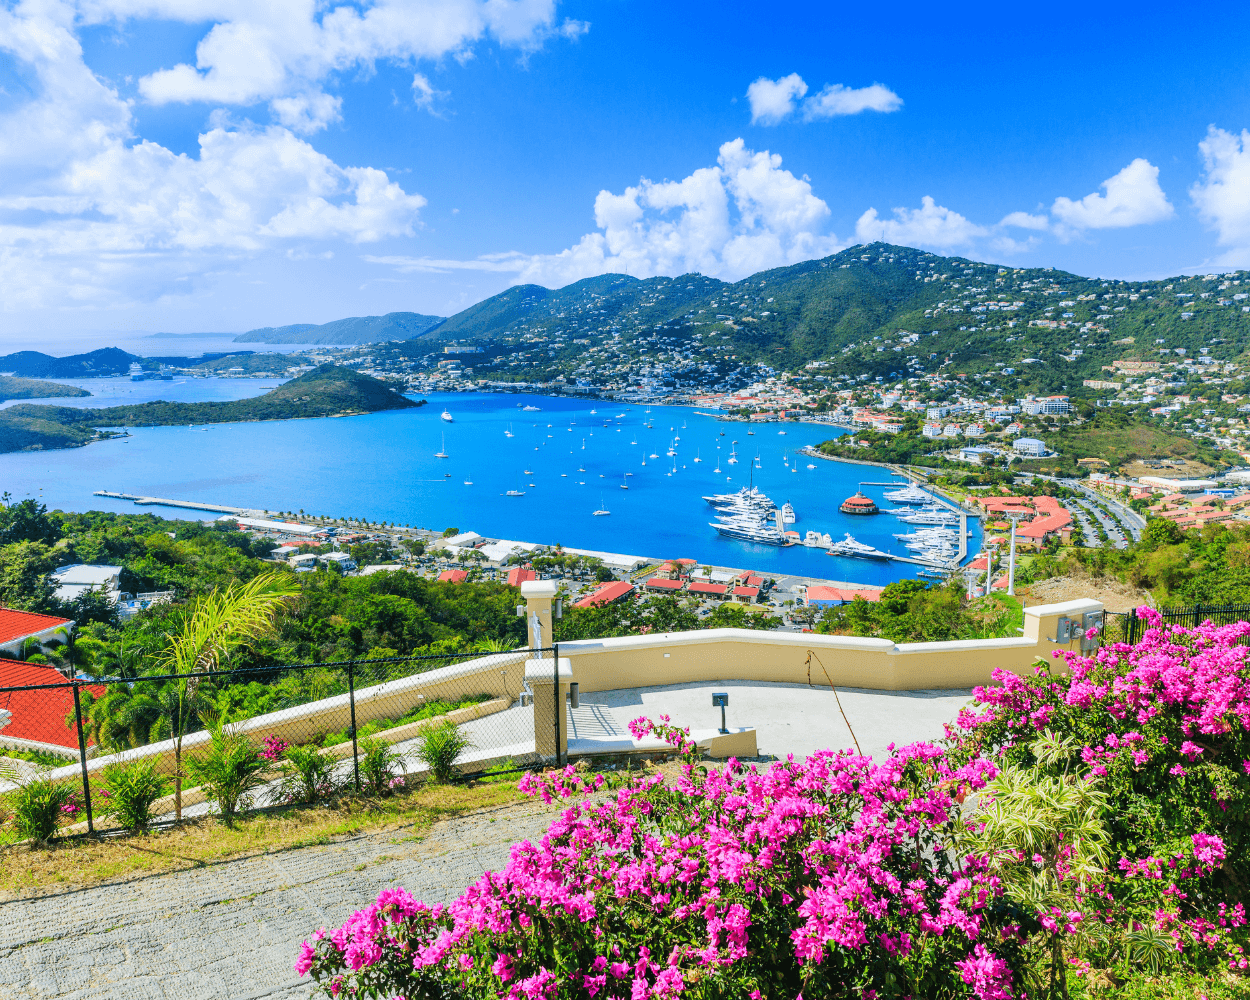 St. Thomas Roads